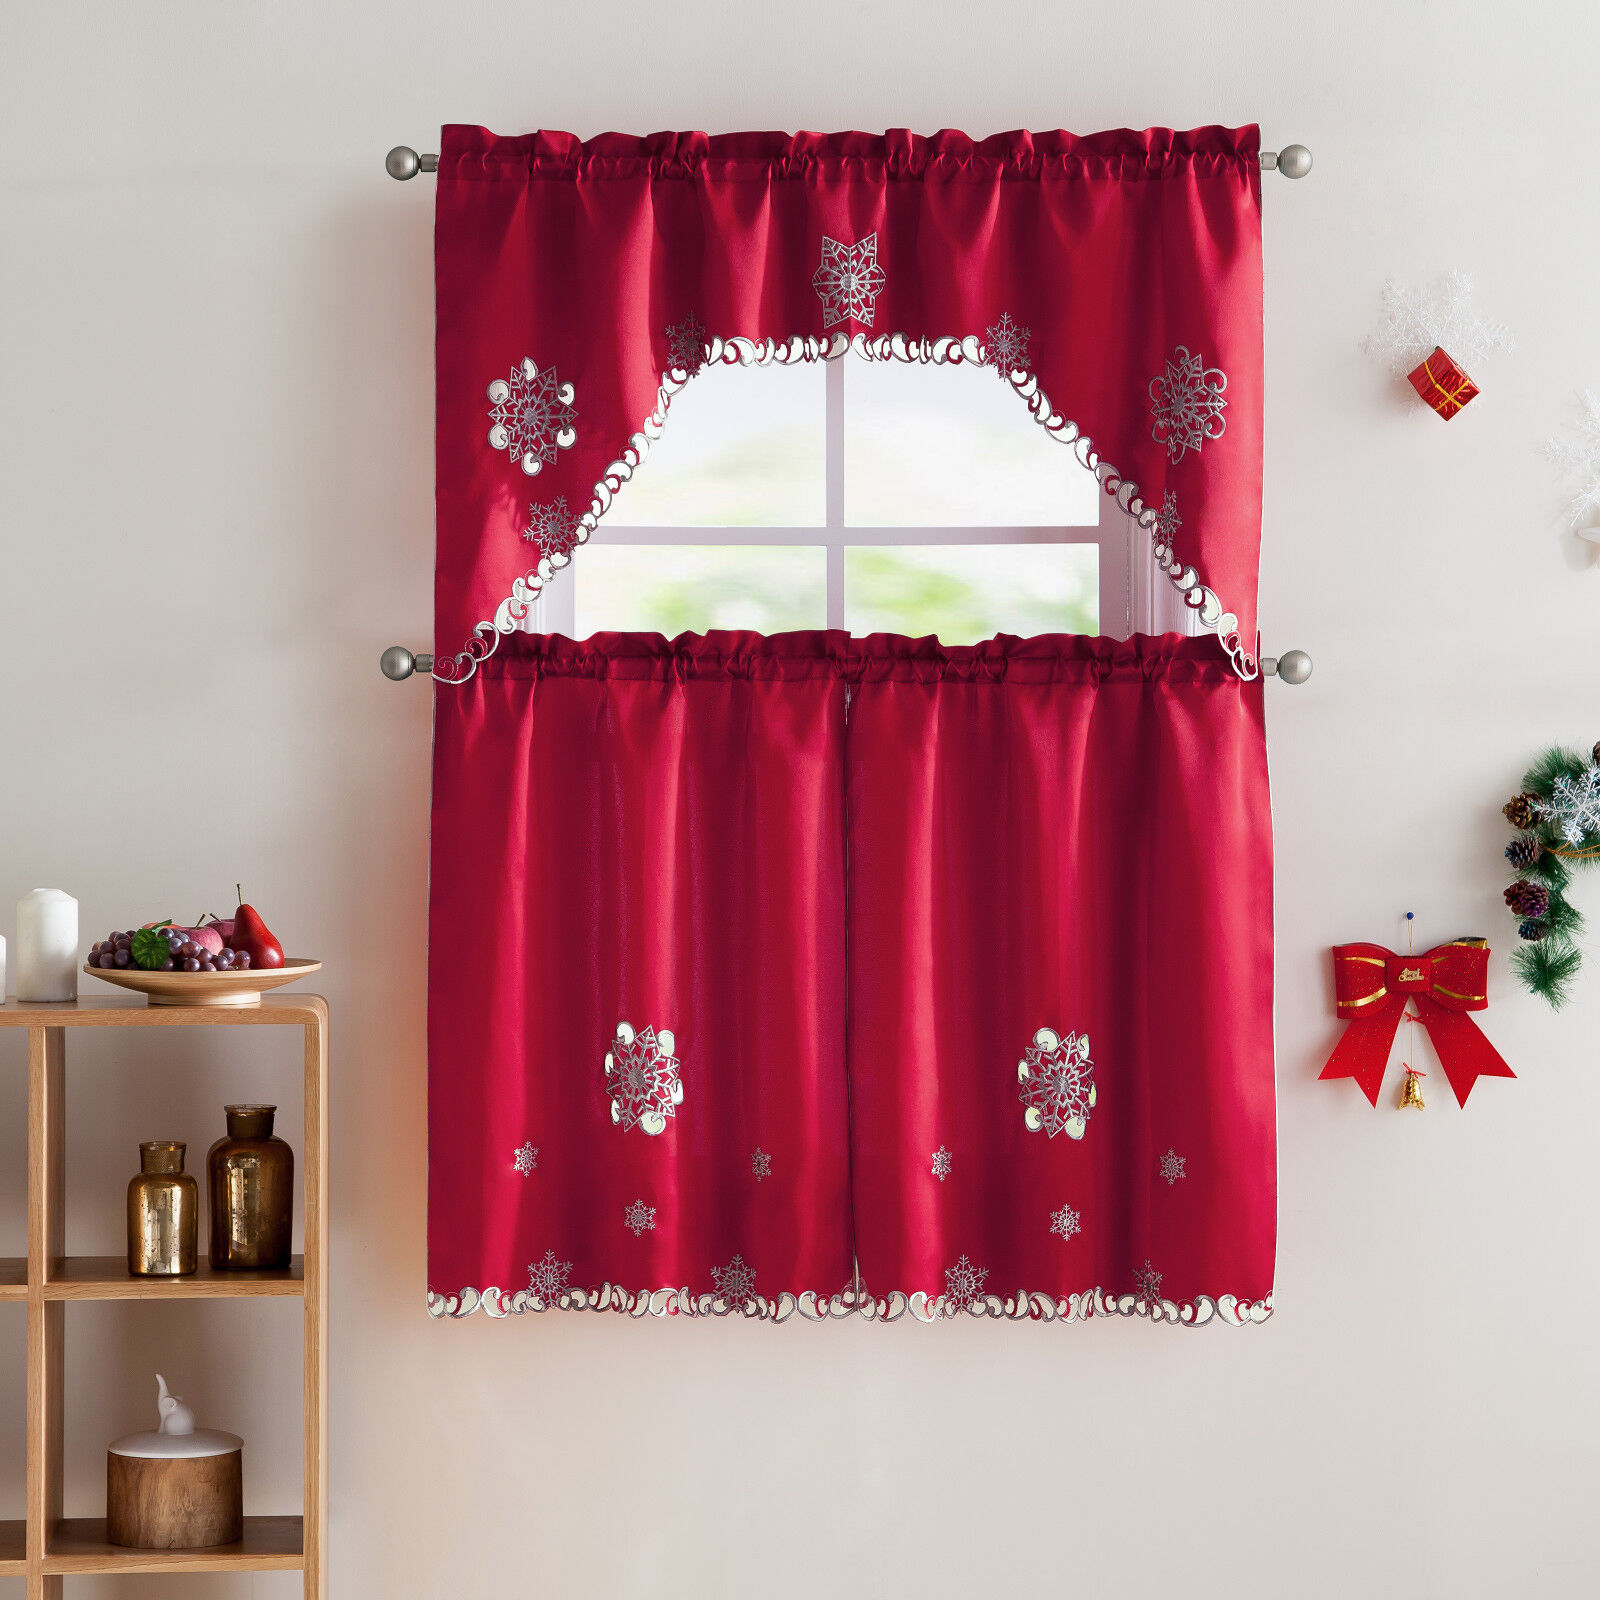 vcny home christmas embroidered kitchen curtain set - assorted colors | ebay